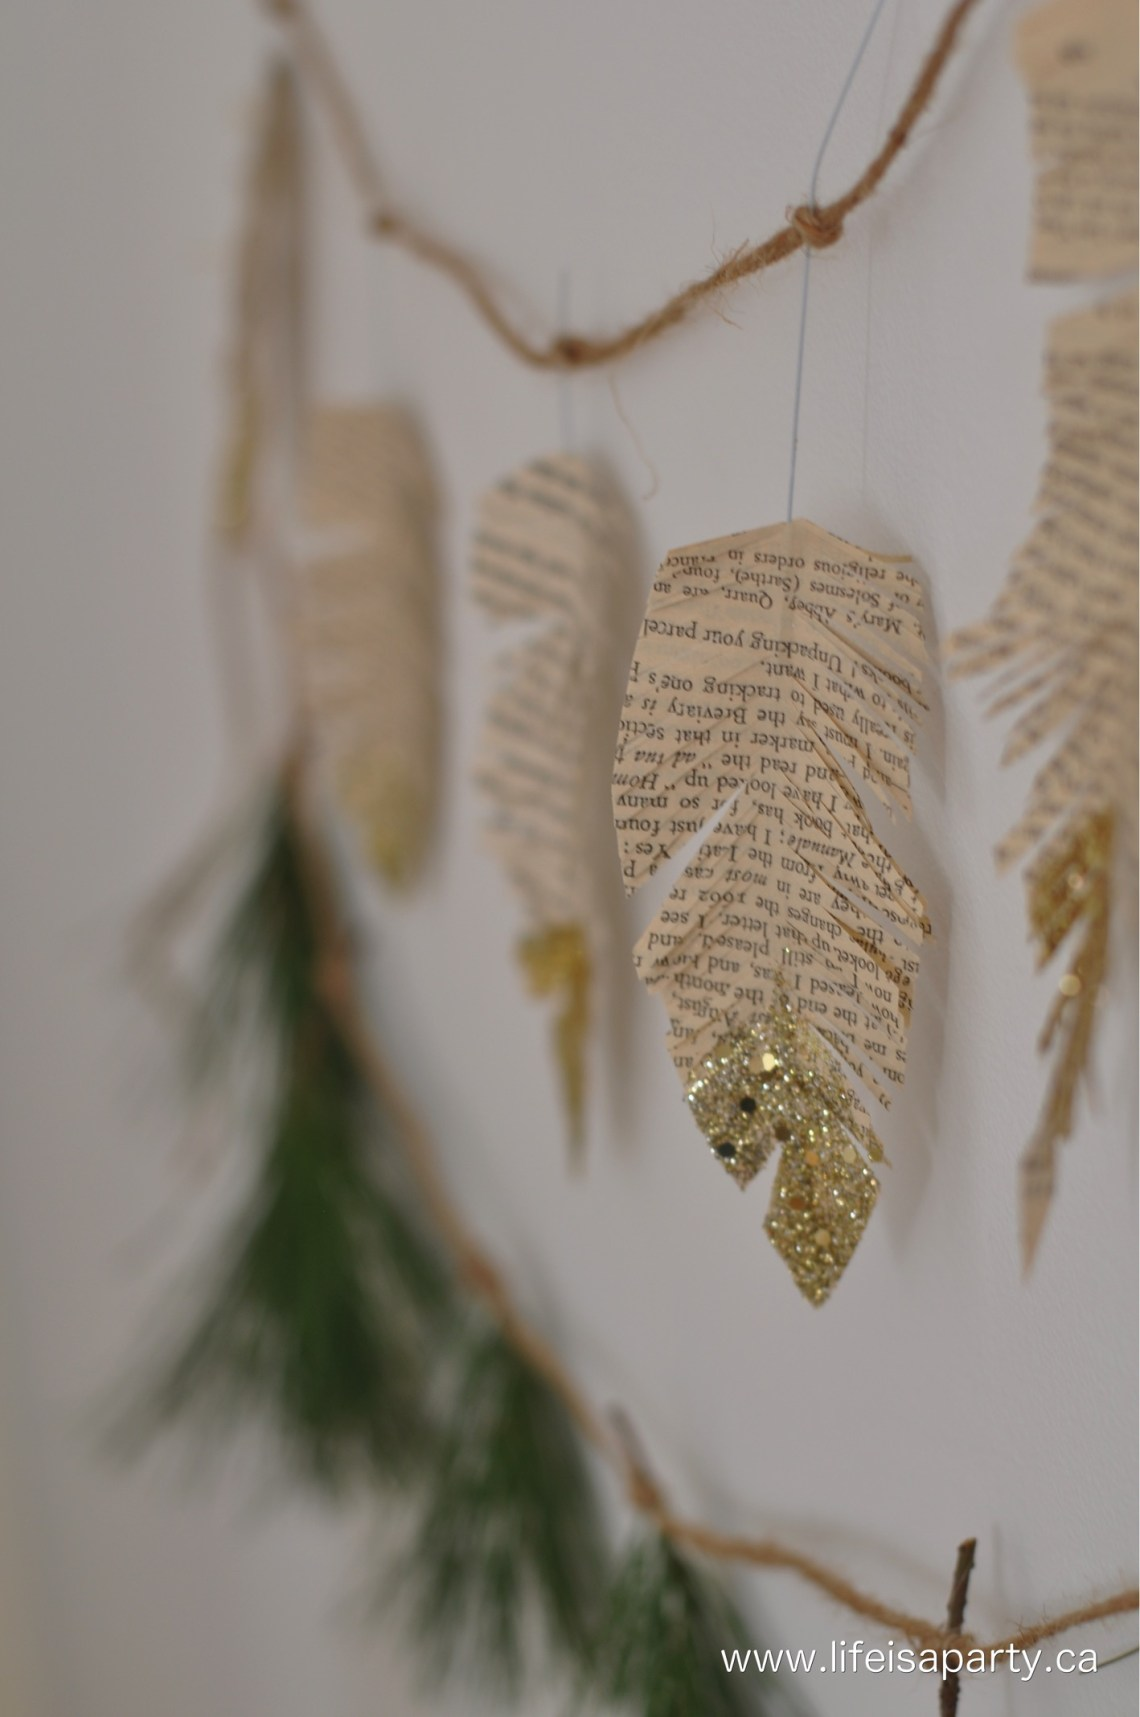 How To Make Book Page Paper Feathers: using old book pages, a glue stick and a wire for a center make beautiful feathers to use as a garland, gift topper, or Christmas tree ornament. Make it festive by adding gold glitter. Easy Holiday DIY.